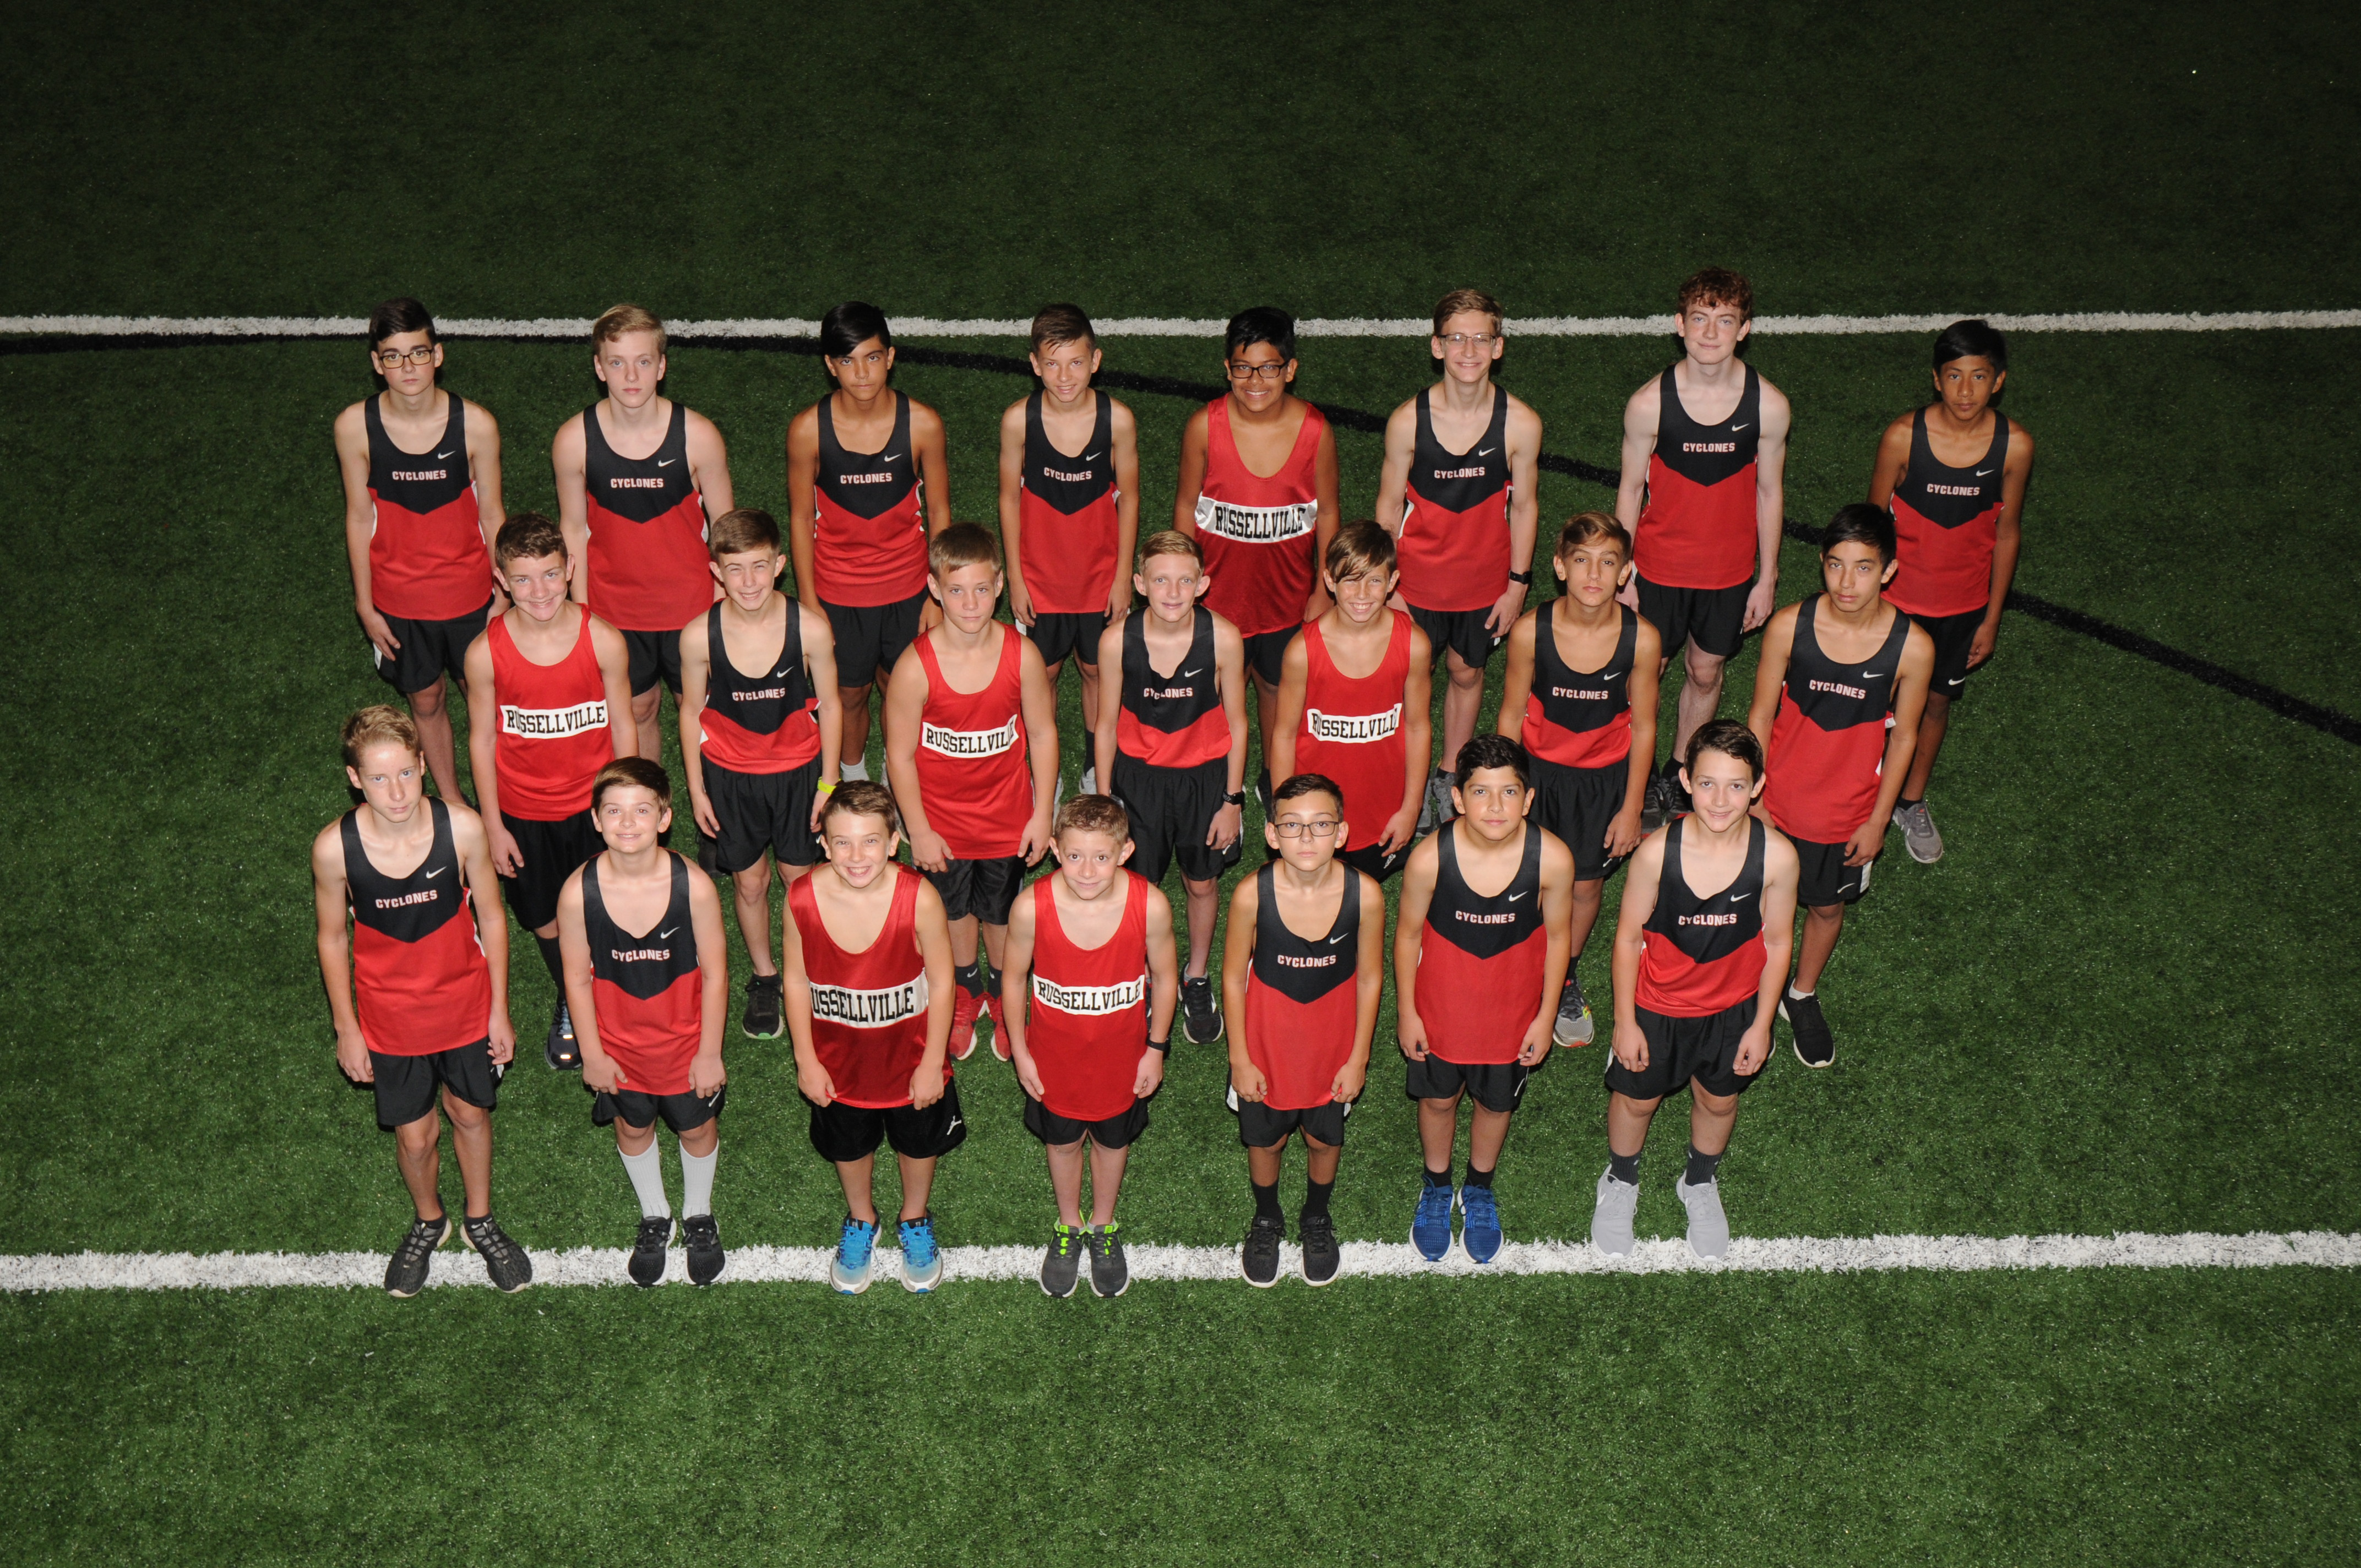 Photo of the Gales Cross Country members